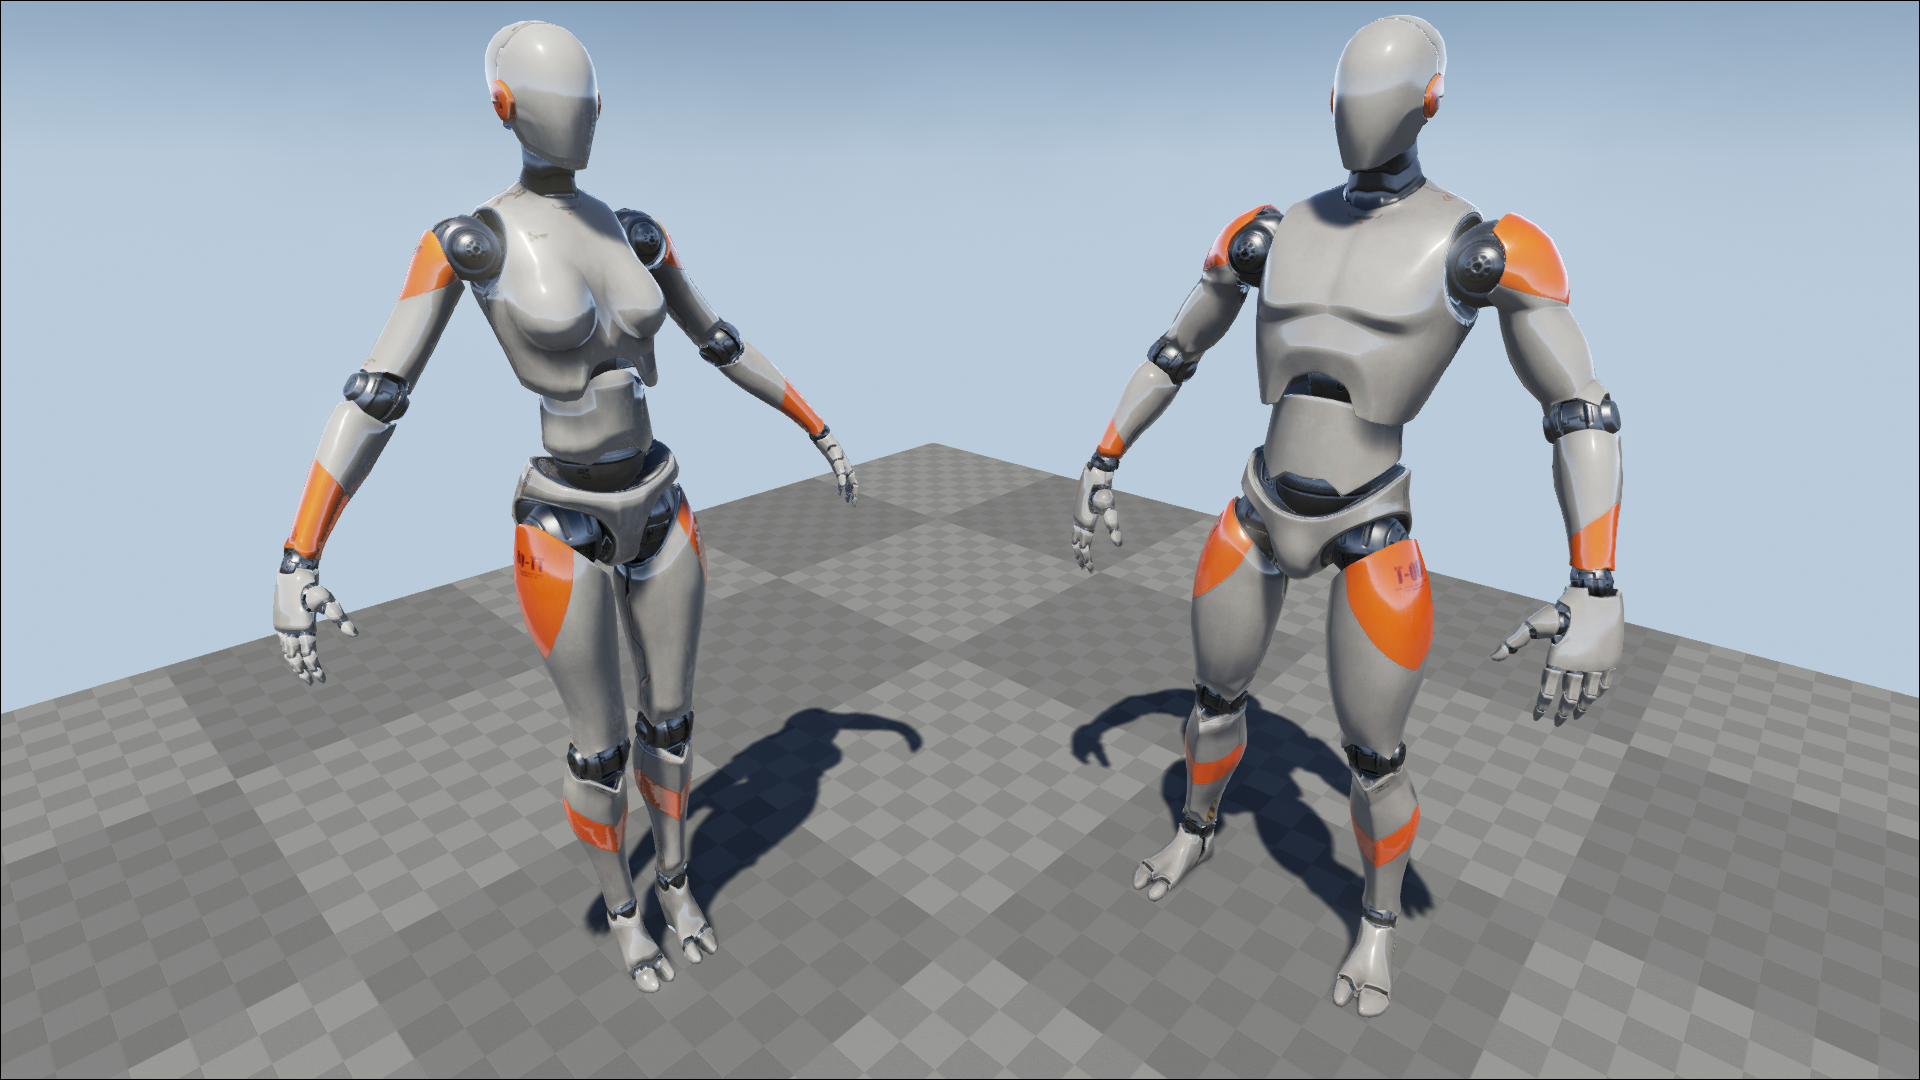 Character Design Unreal Engine : Prototype characters by ying pei games in ue